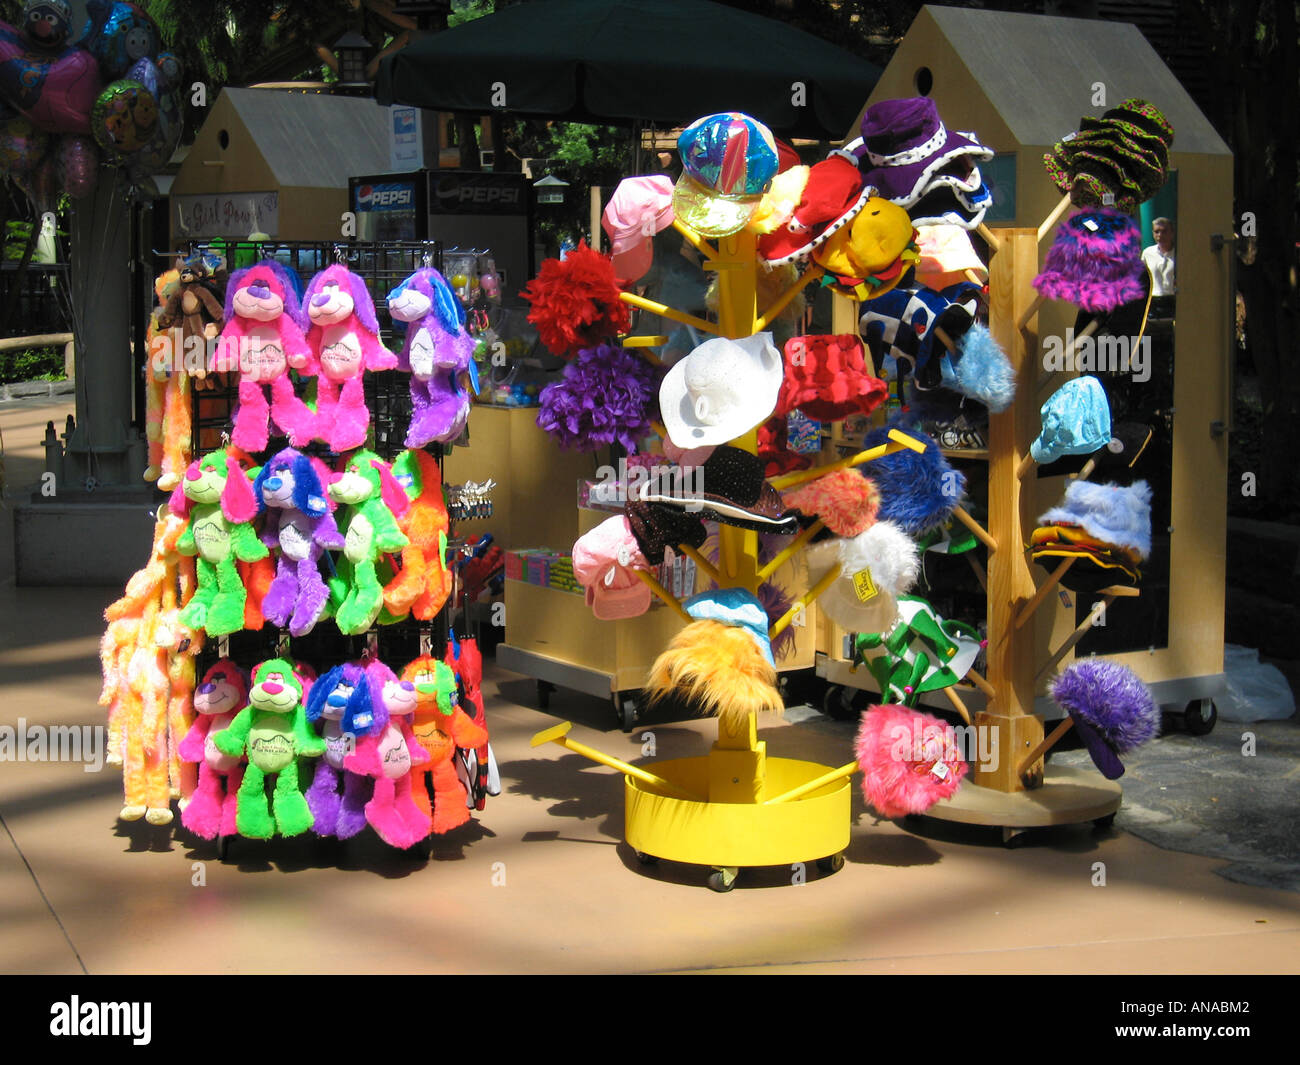 Colorful Market Stall Selling Hats and Cuddly Toys in Mall of America  Minneapolis St Paul USA 461c0cbc822d